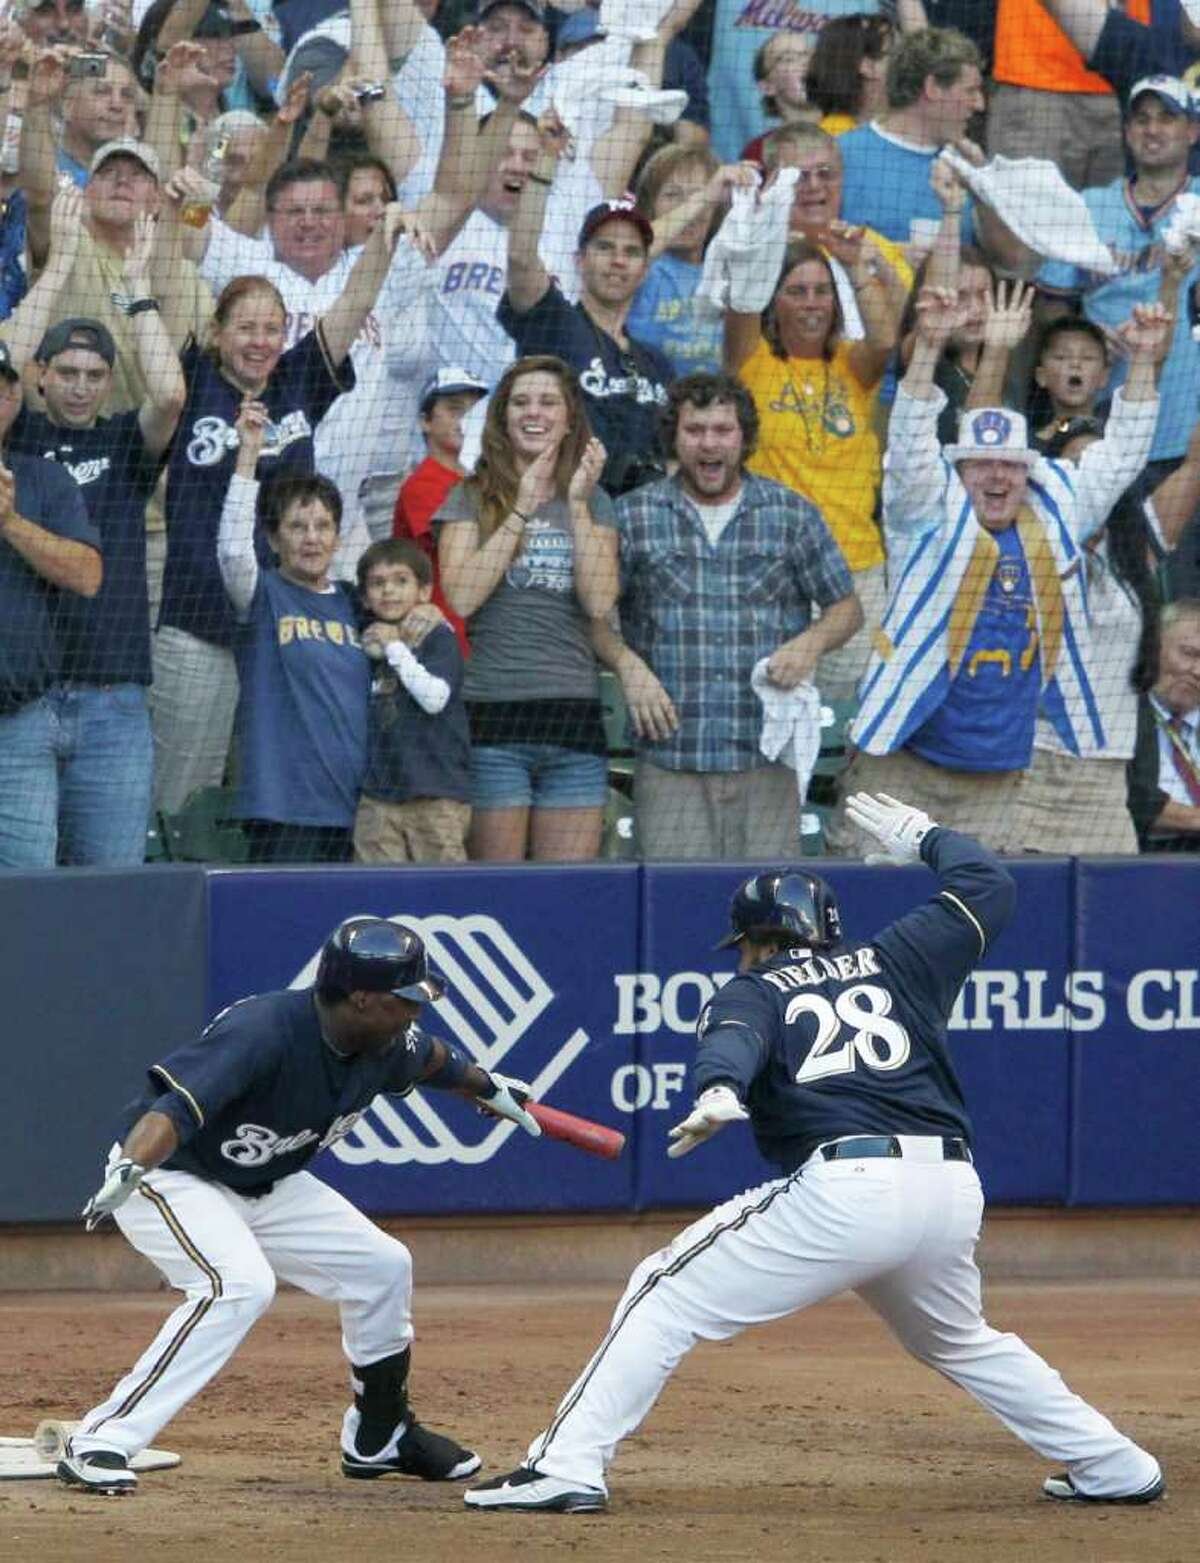 JEFF ROBERSON: ASSOCIATED PRESS BANG, BANG: Milwaukee fans enjoy the antics of Yuniesky Betancourt, left, and Prince Fielder during a six-run fifth inning in which both players homered.